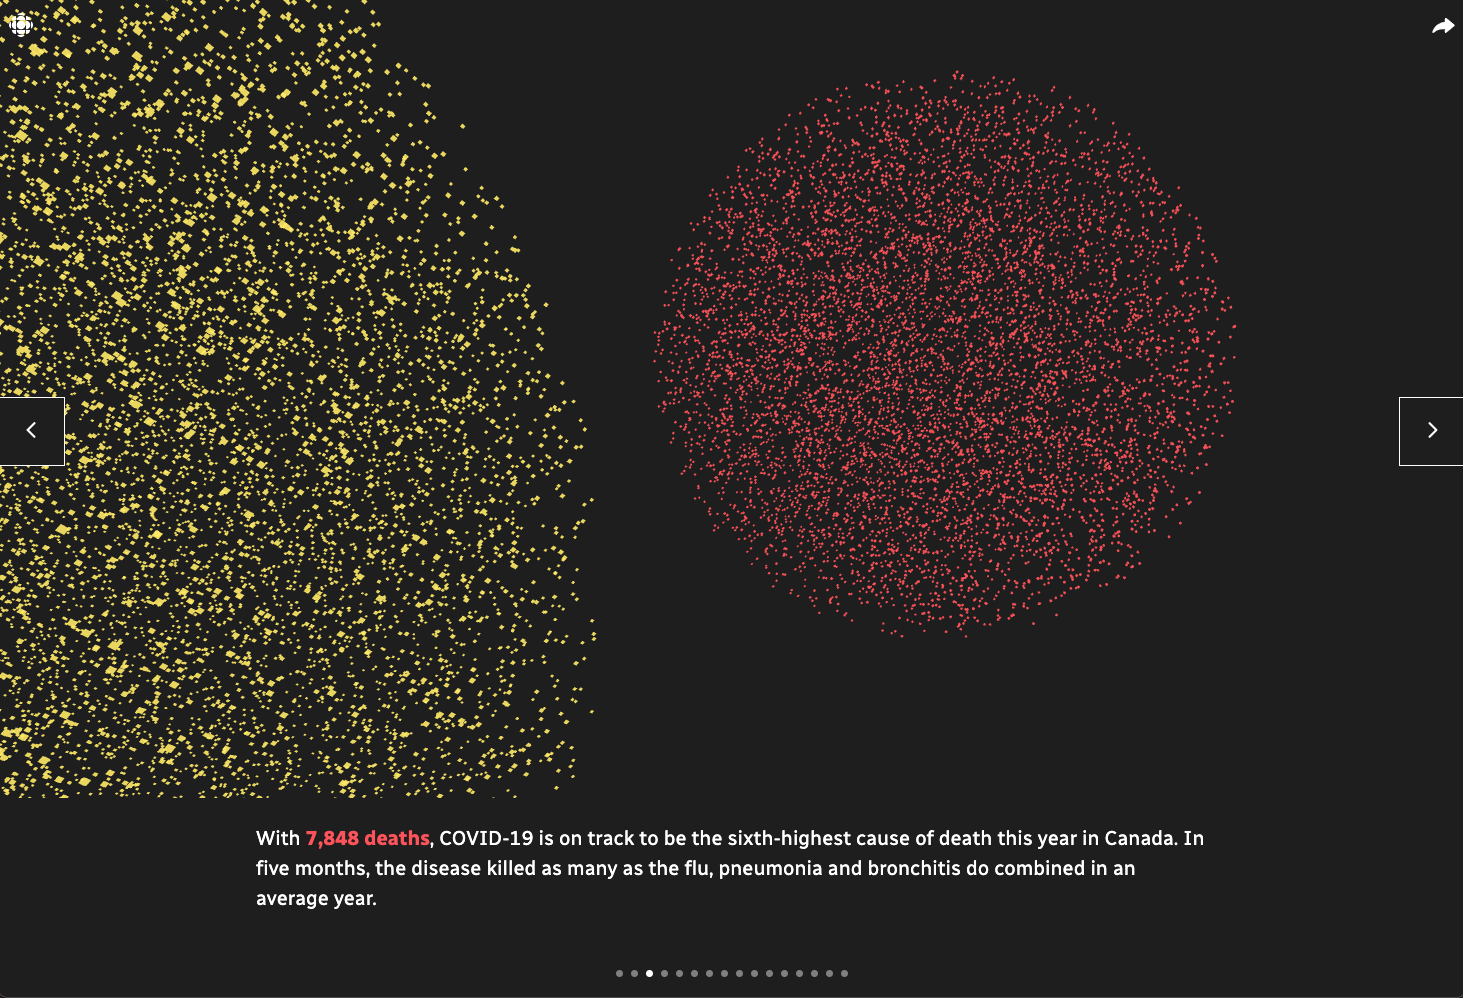 Red particles representing deaths from COVID-19.